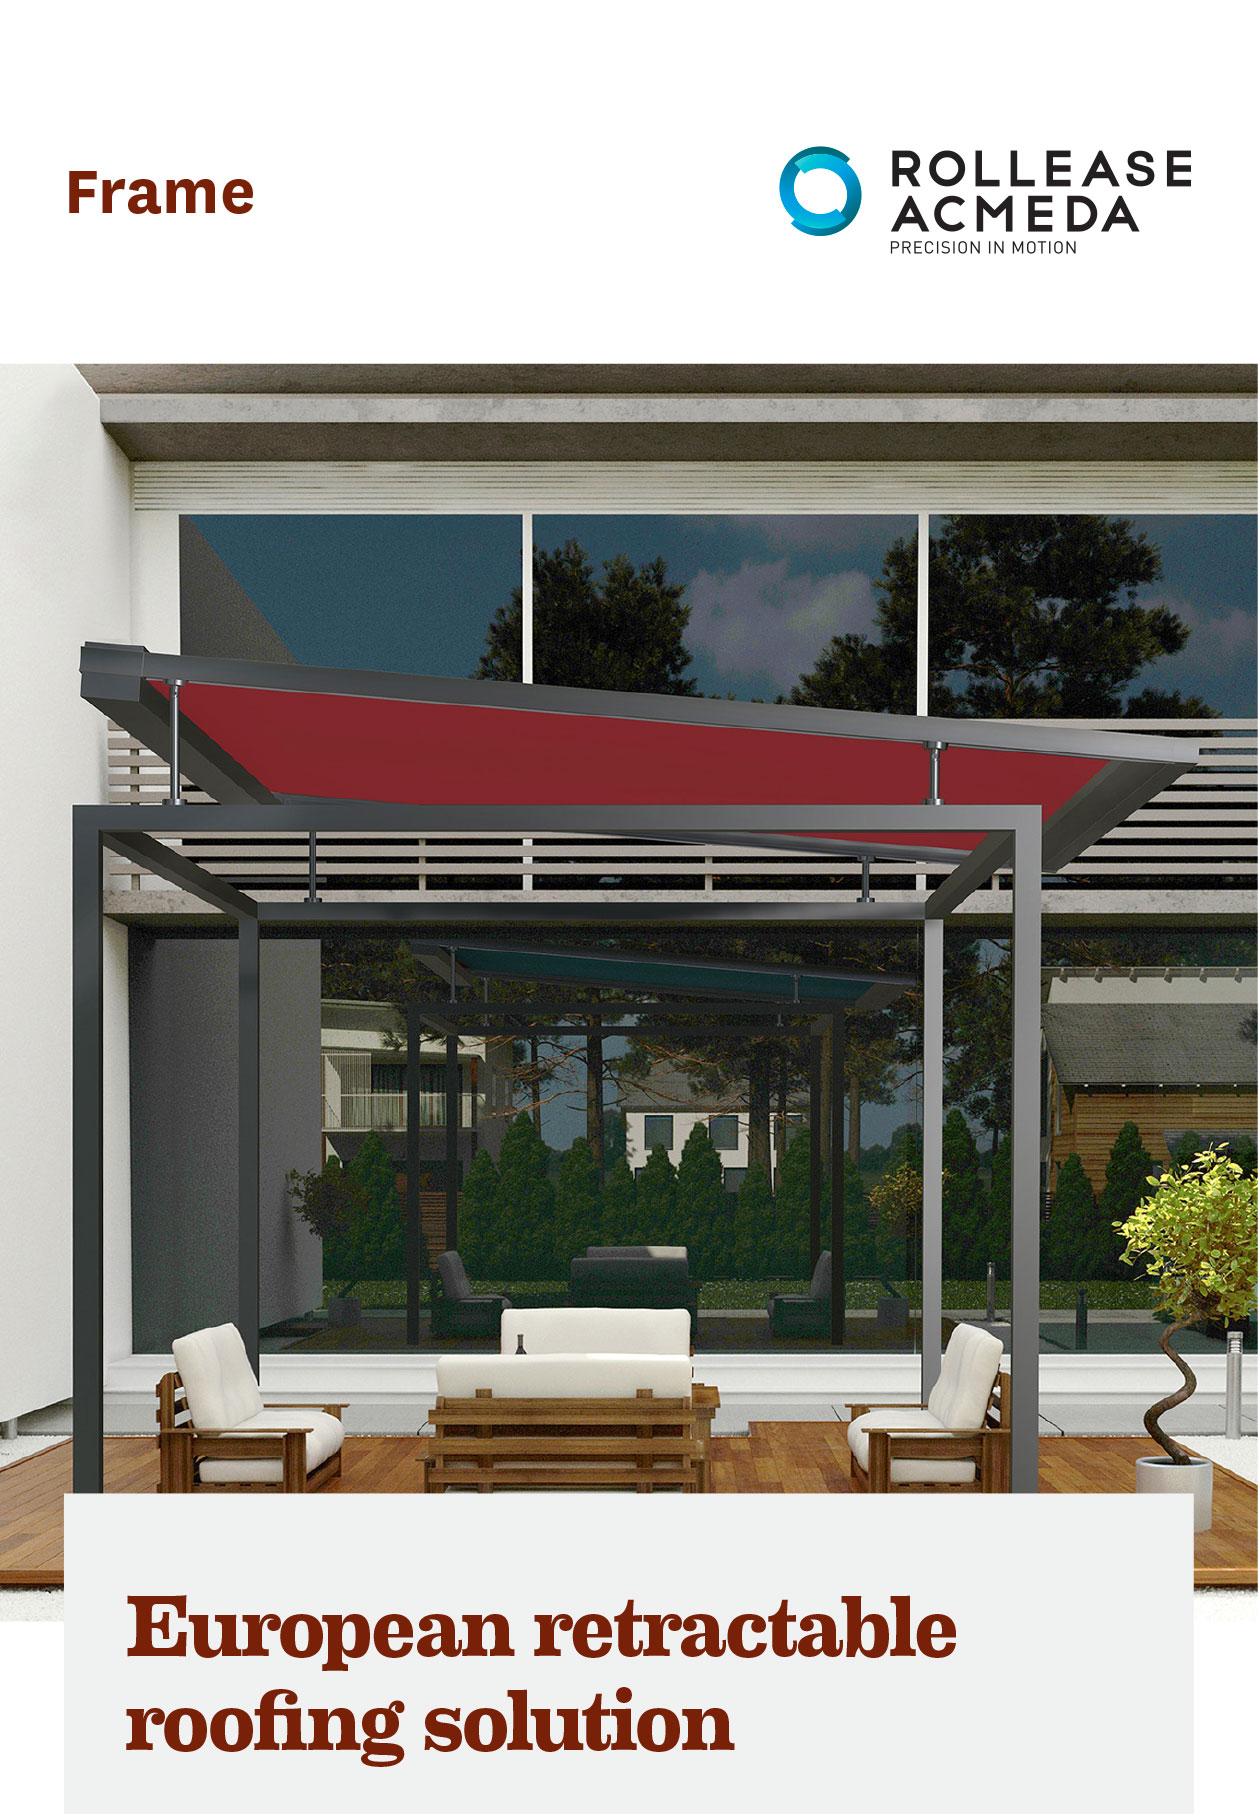 Eurpean retractable roofing solution